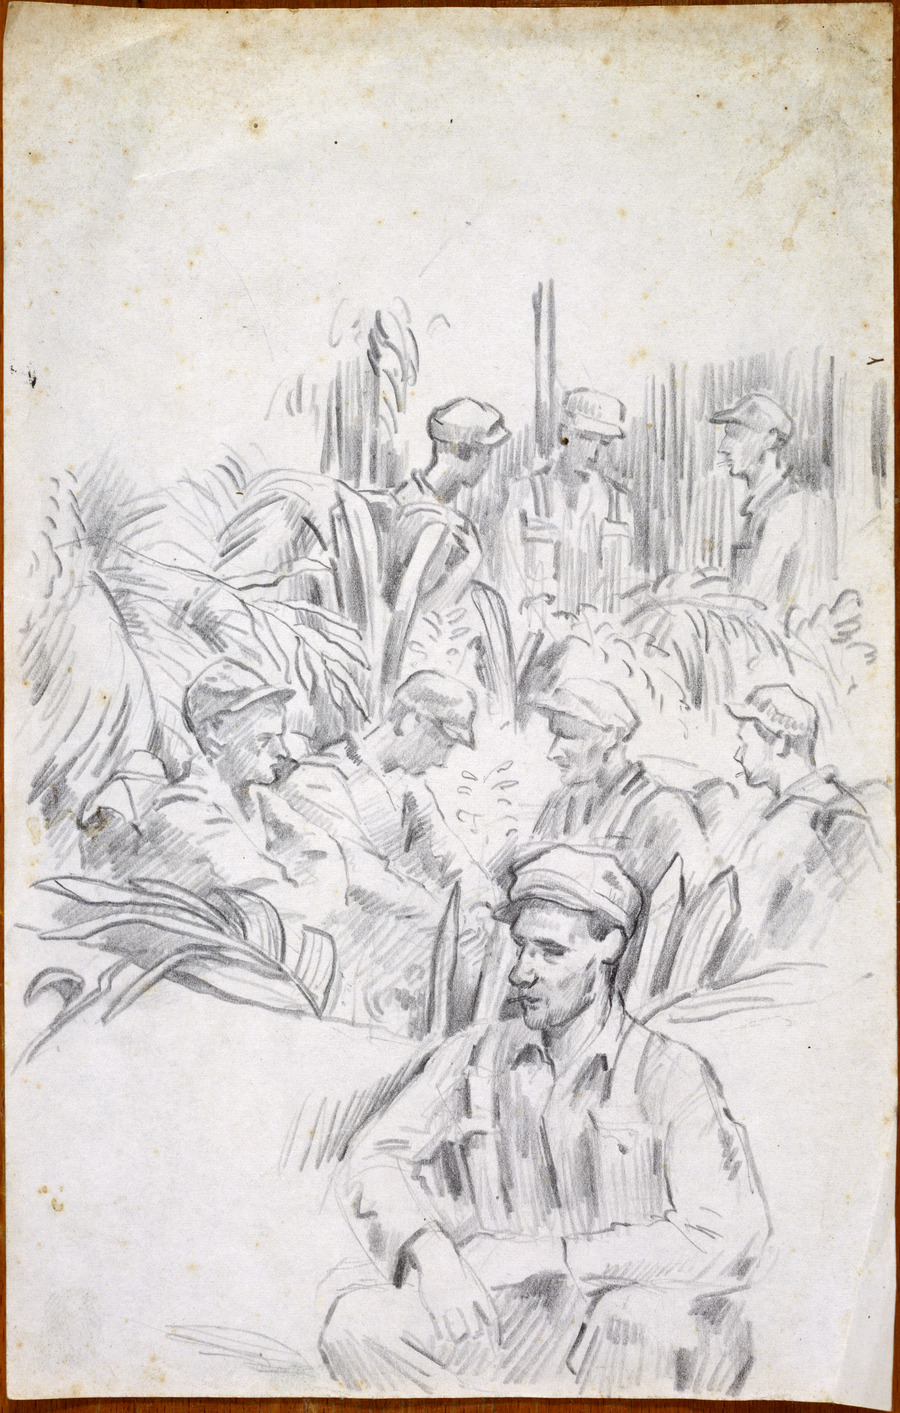 [Eight soldiers in jungle resting]